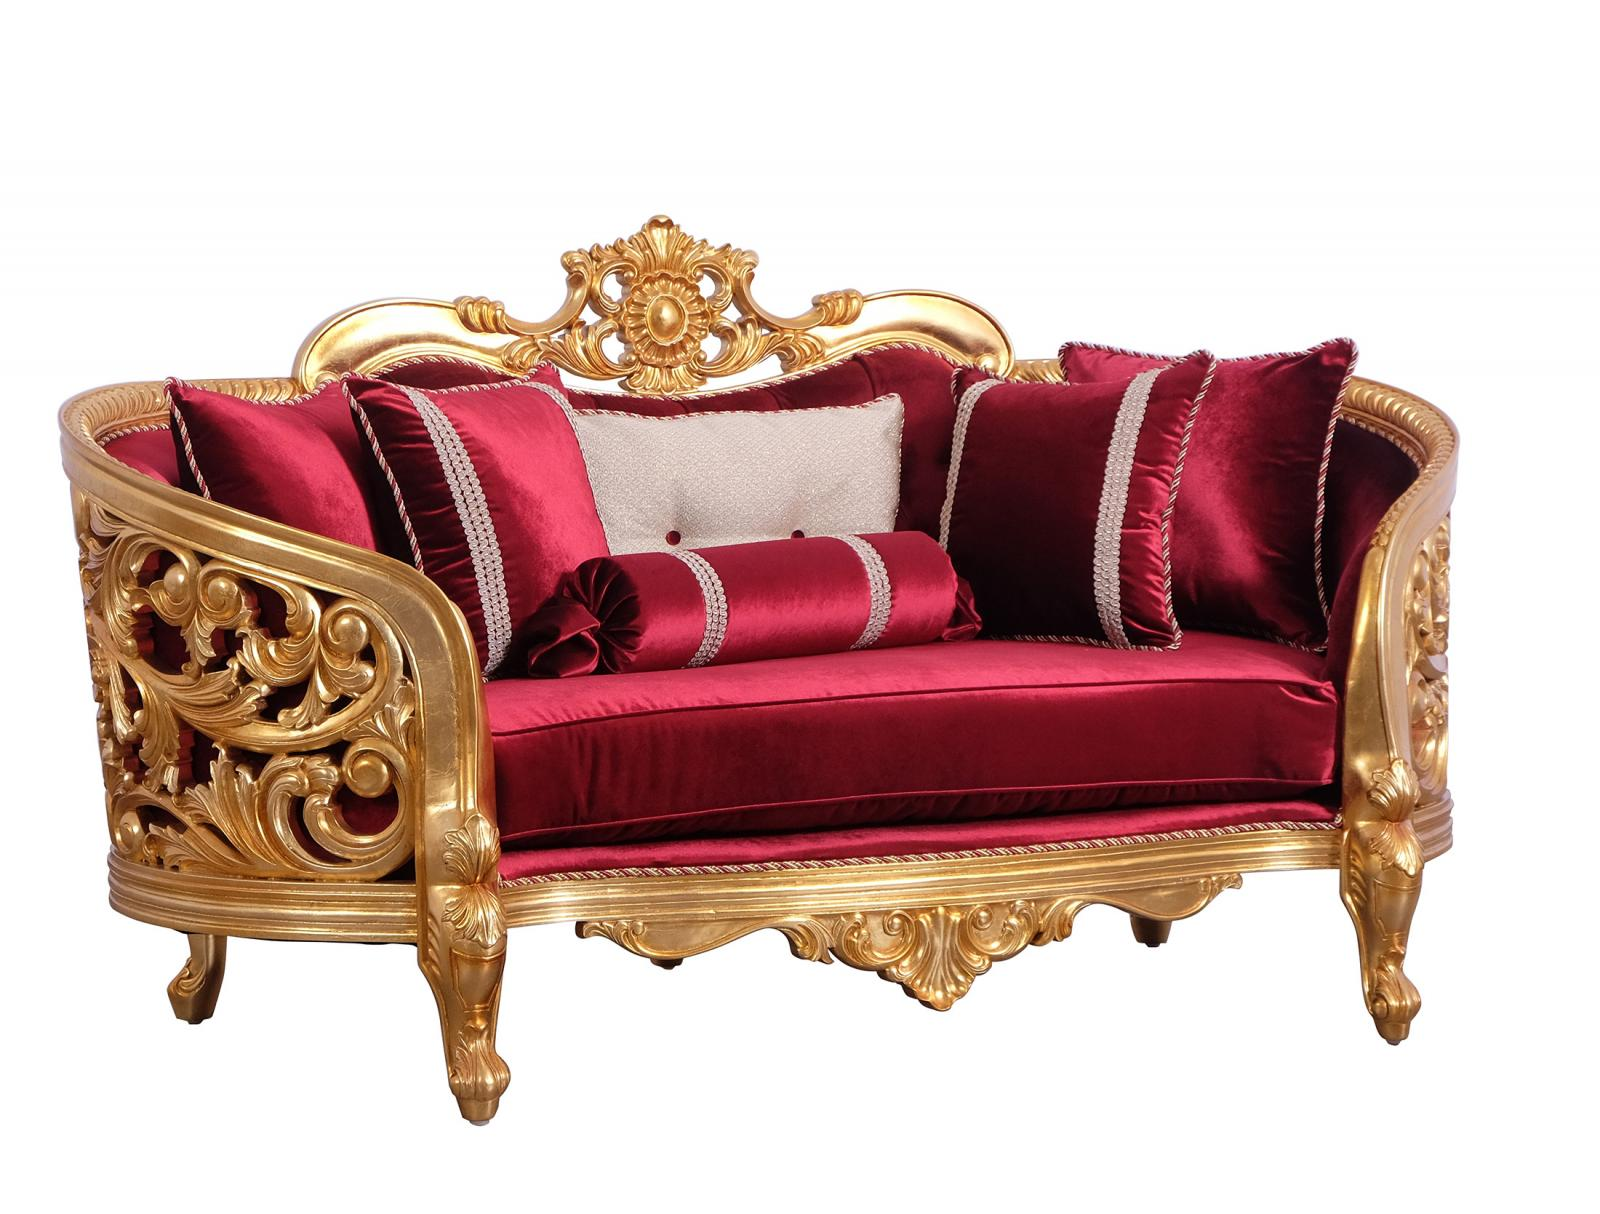 Classic  Traditional Burgundy  Gold  Antique   Red Wood  Solid Hardwood and Velvet Loveseat EUROPEAN FURNITURE 30015-L